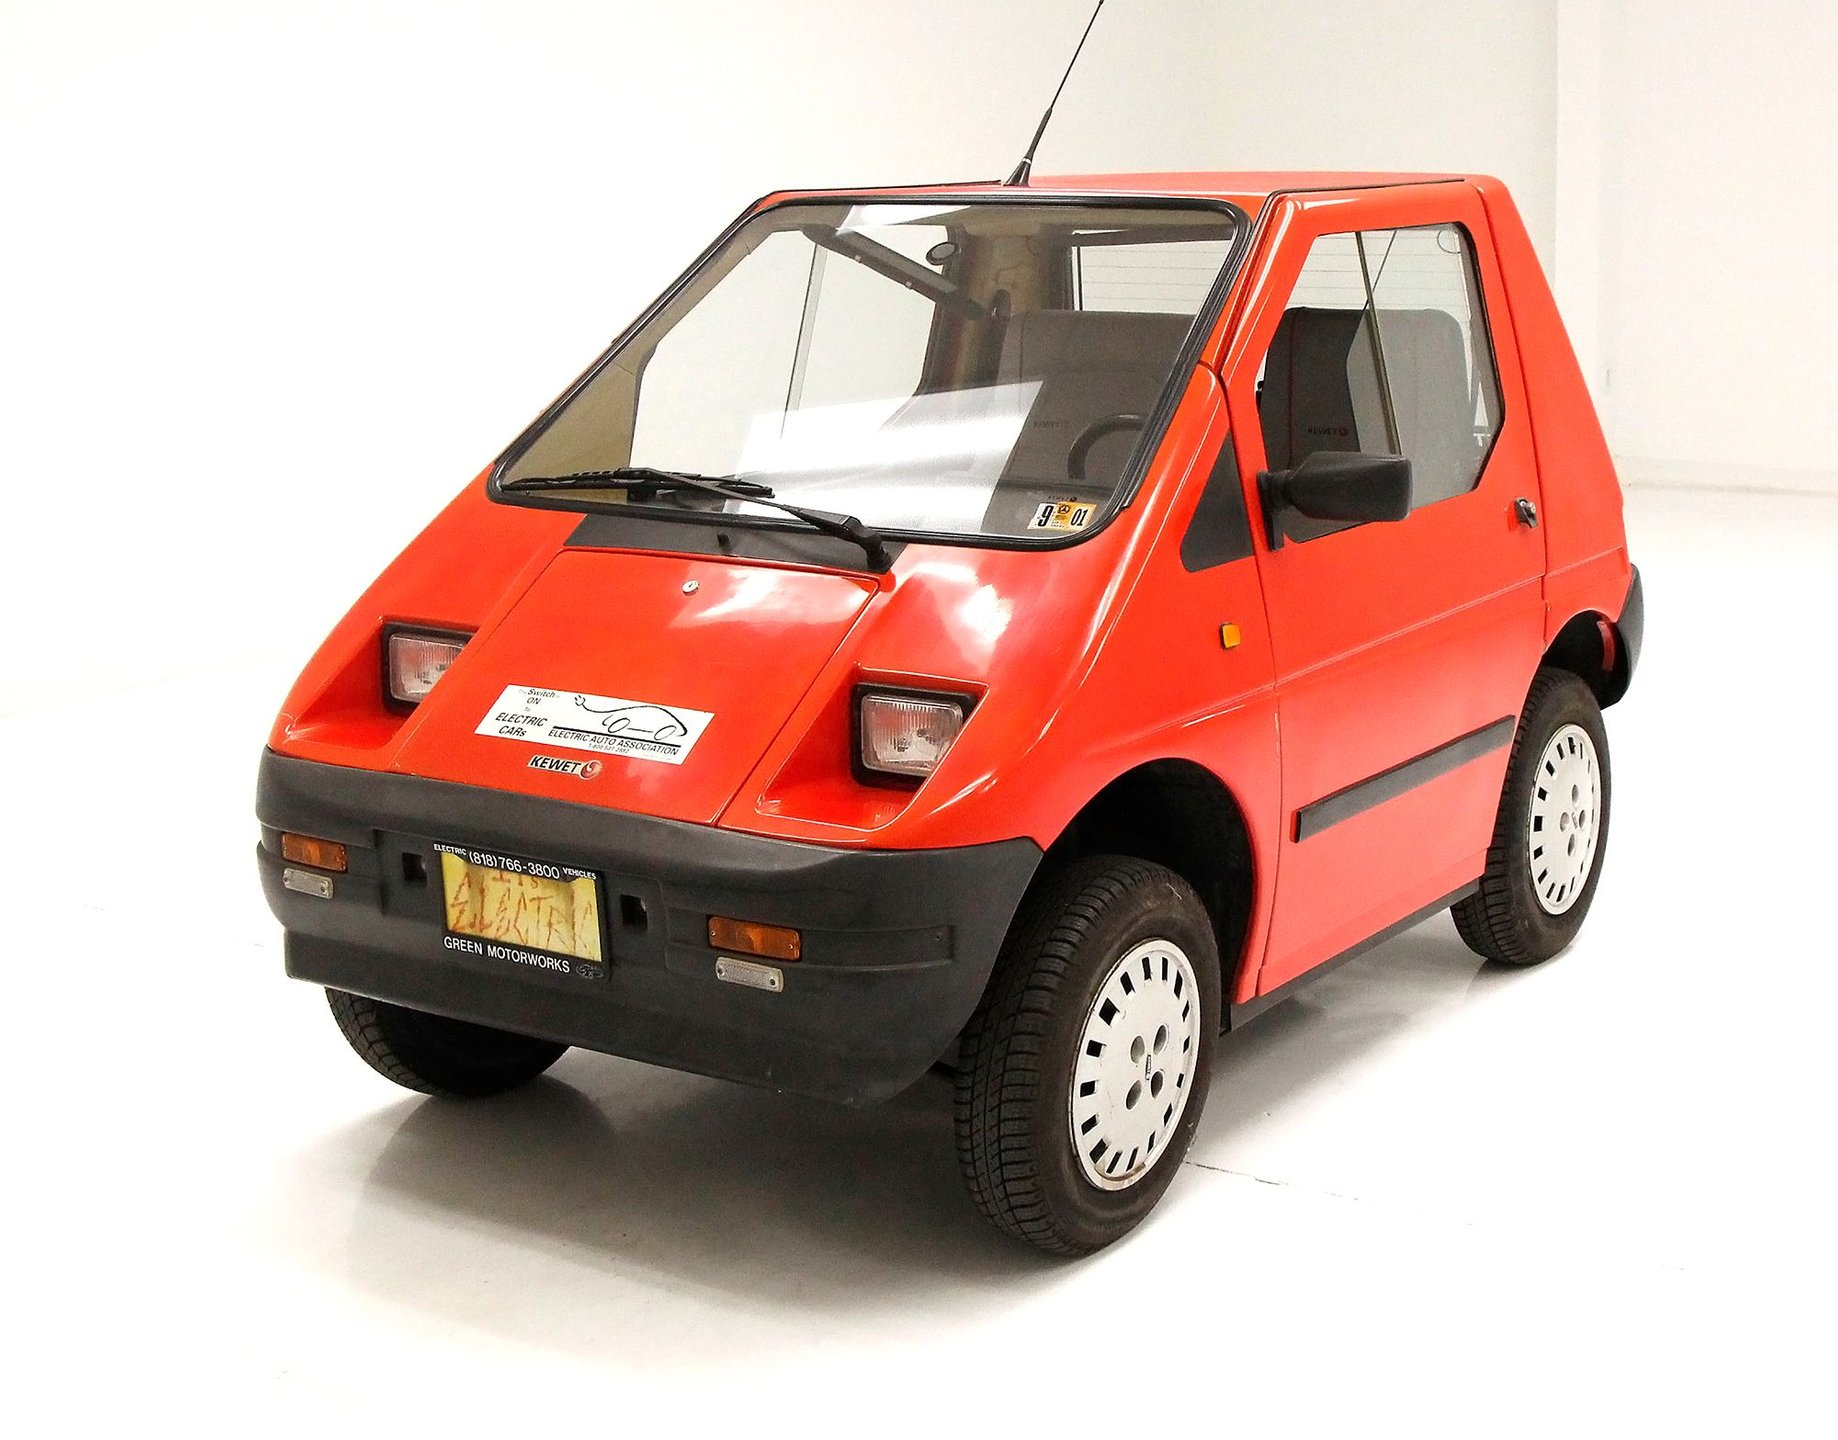 1993 Kewet Electric Car